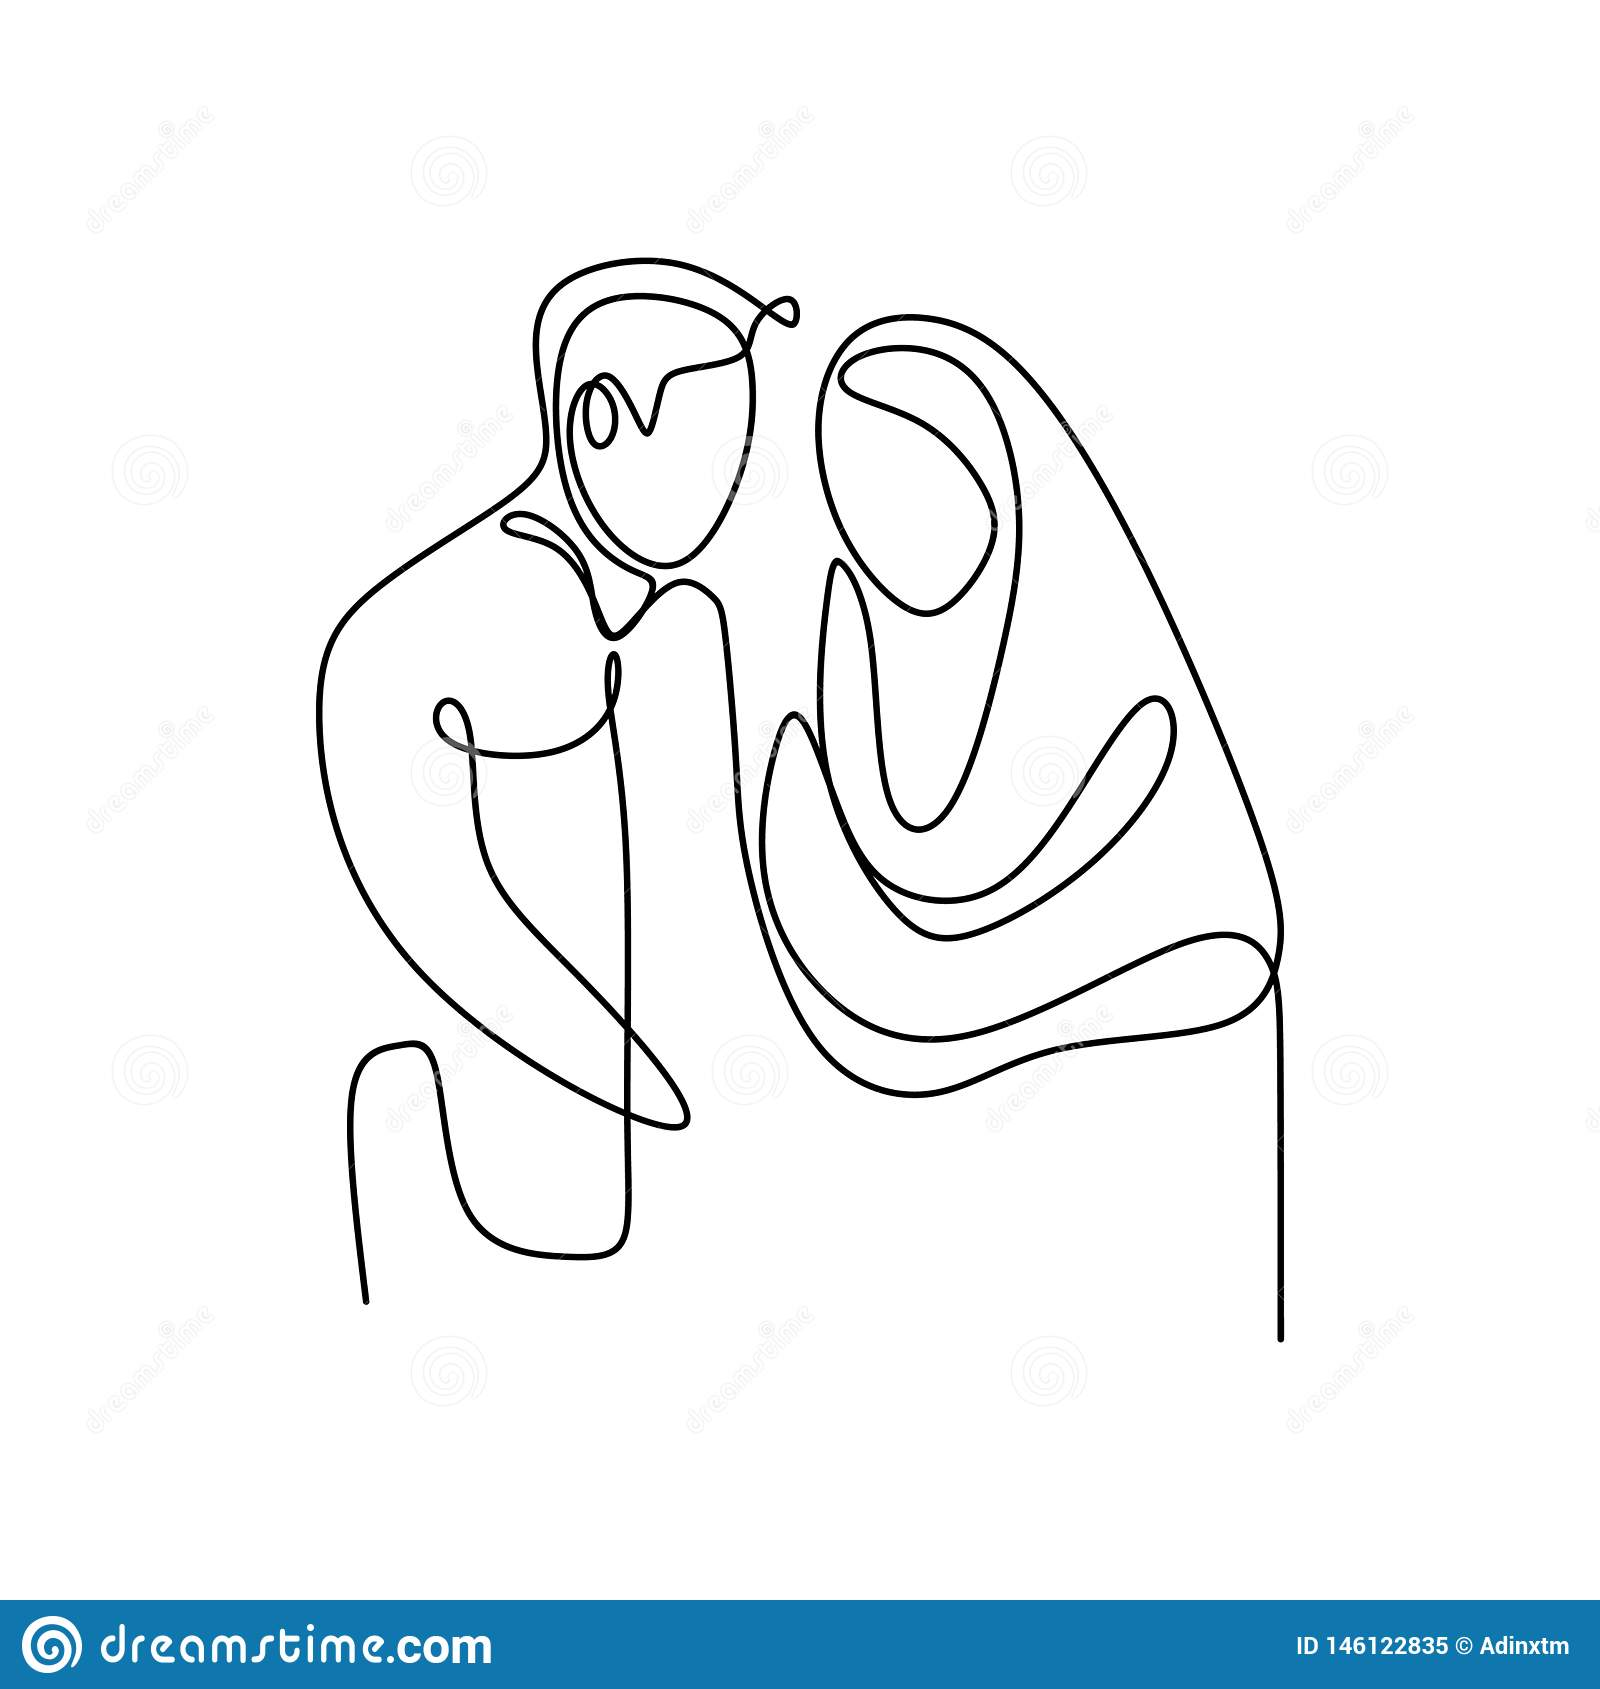 Muslim couple continuous line drawing of a man and girl romantic design minimalism style